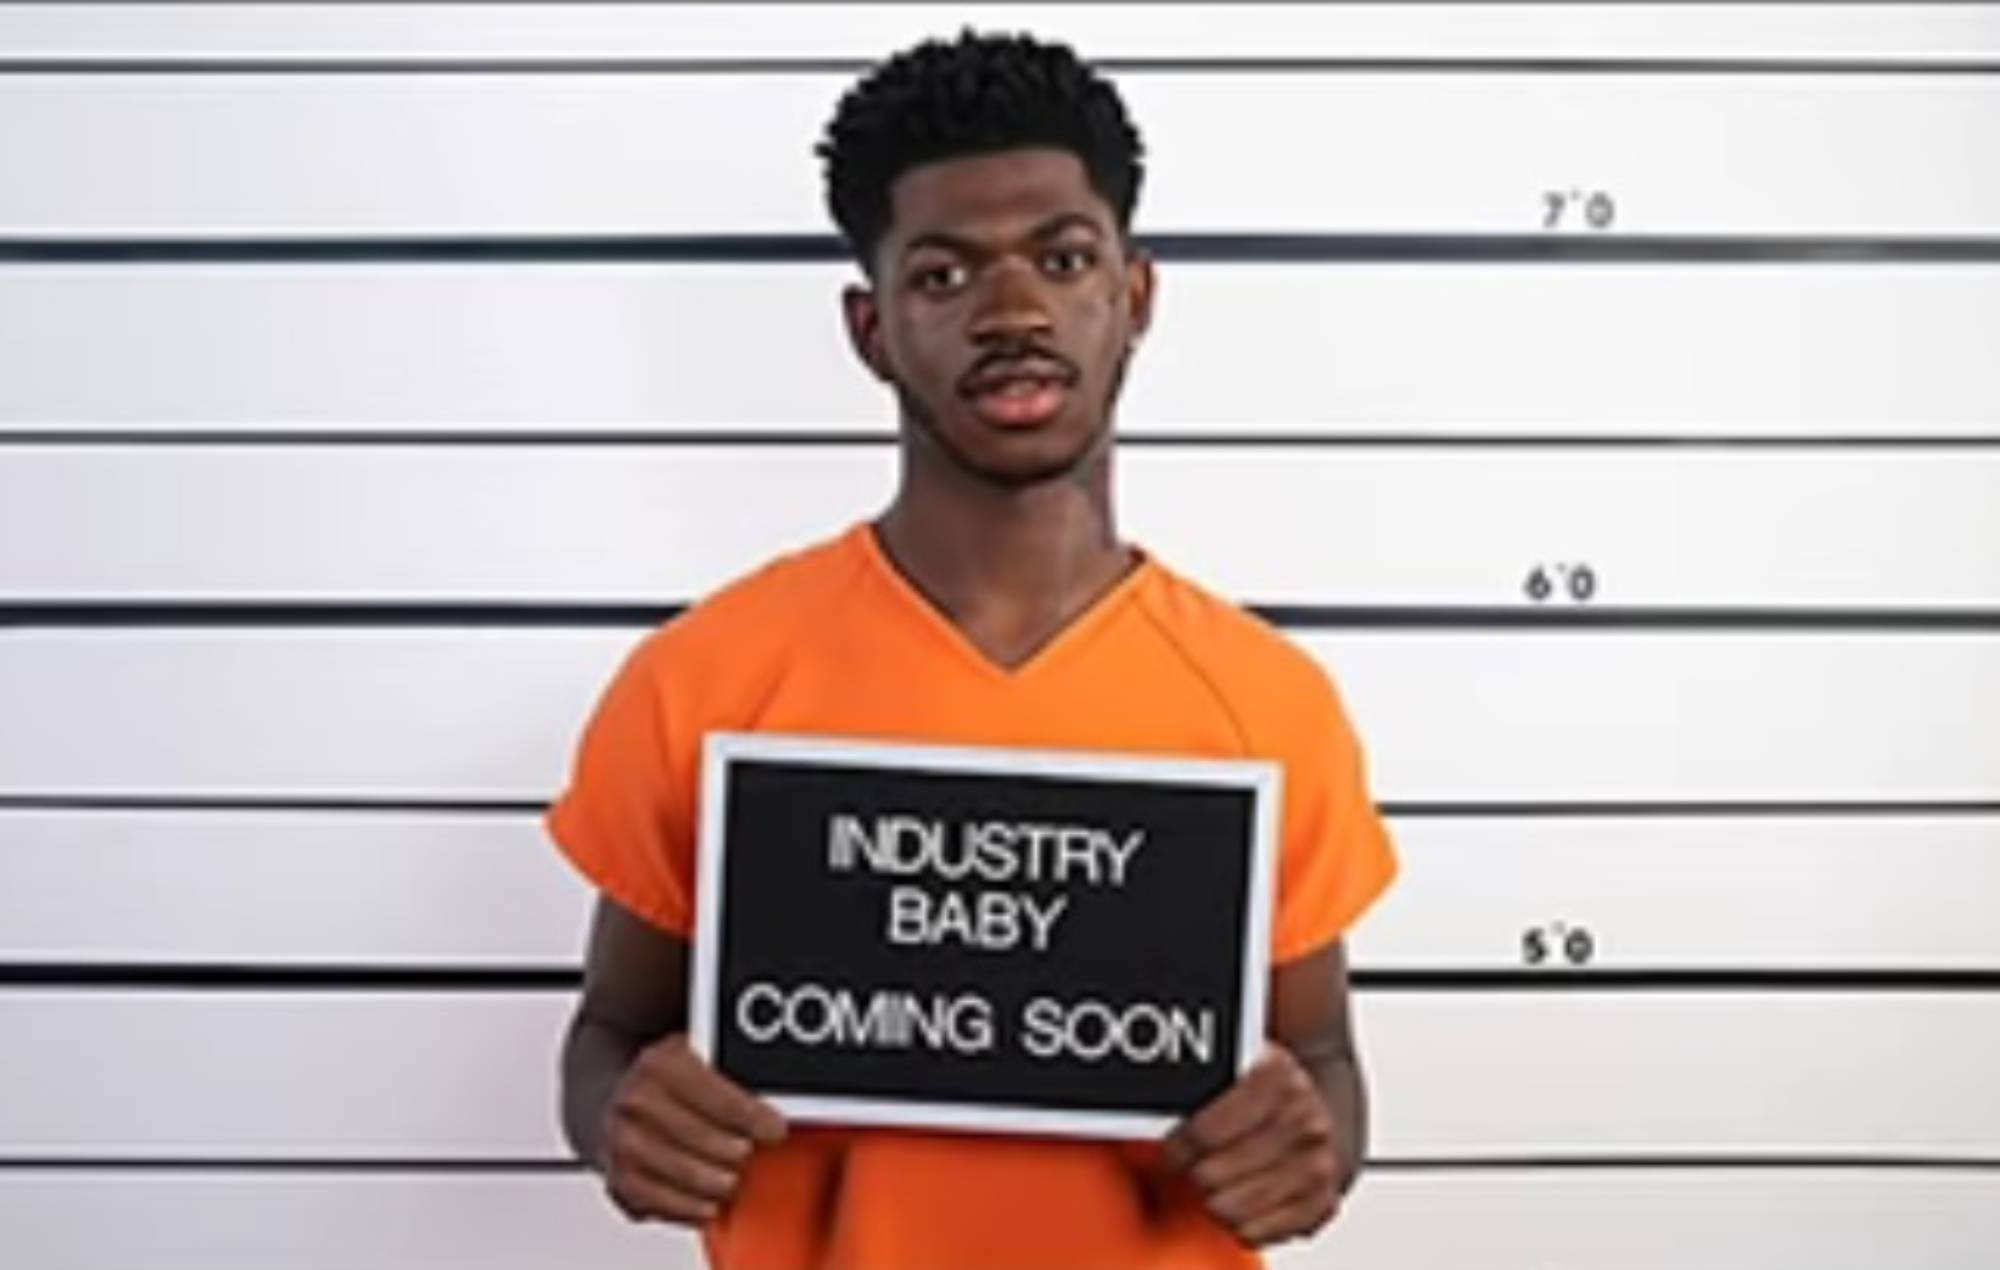 Lil Nas X teases Kanye West-produced single 'Industry Baby' with Nike court trial skit